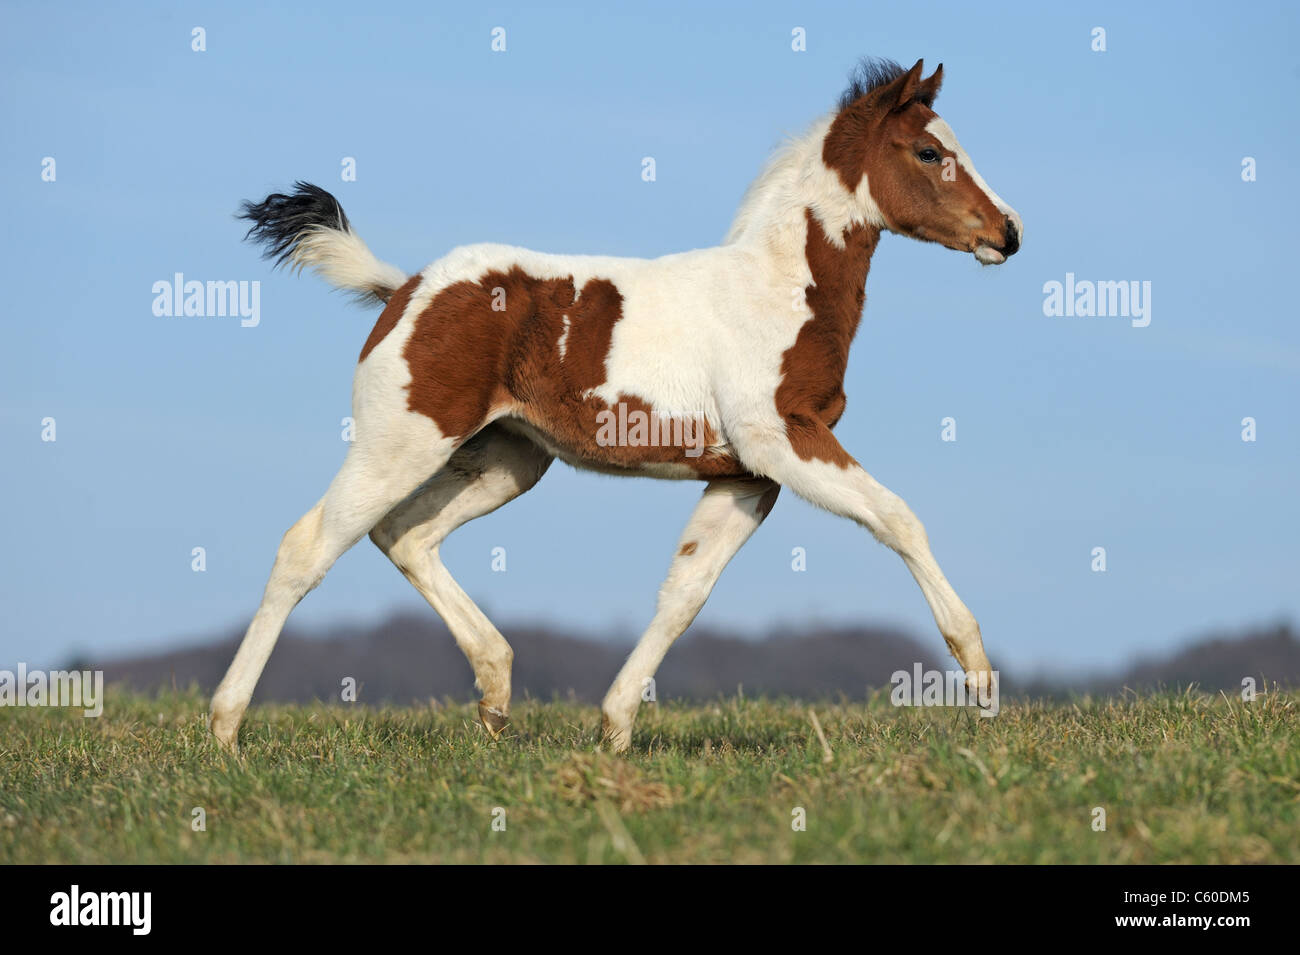 Paint Horse (Equus ferus caballus). Foal trotting on a meadow. - Stock Image